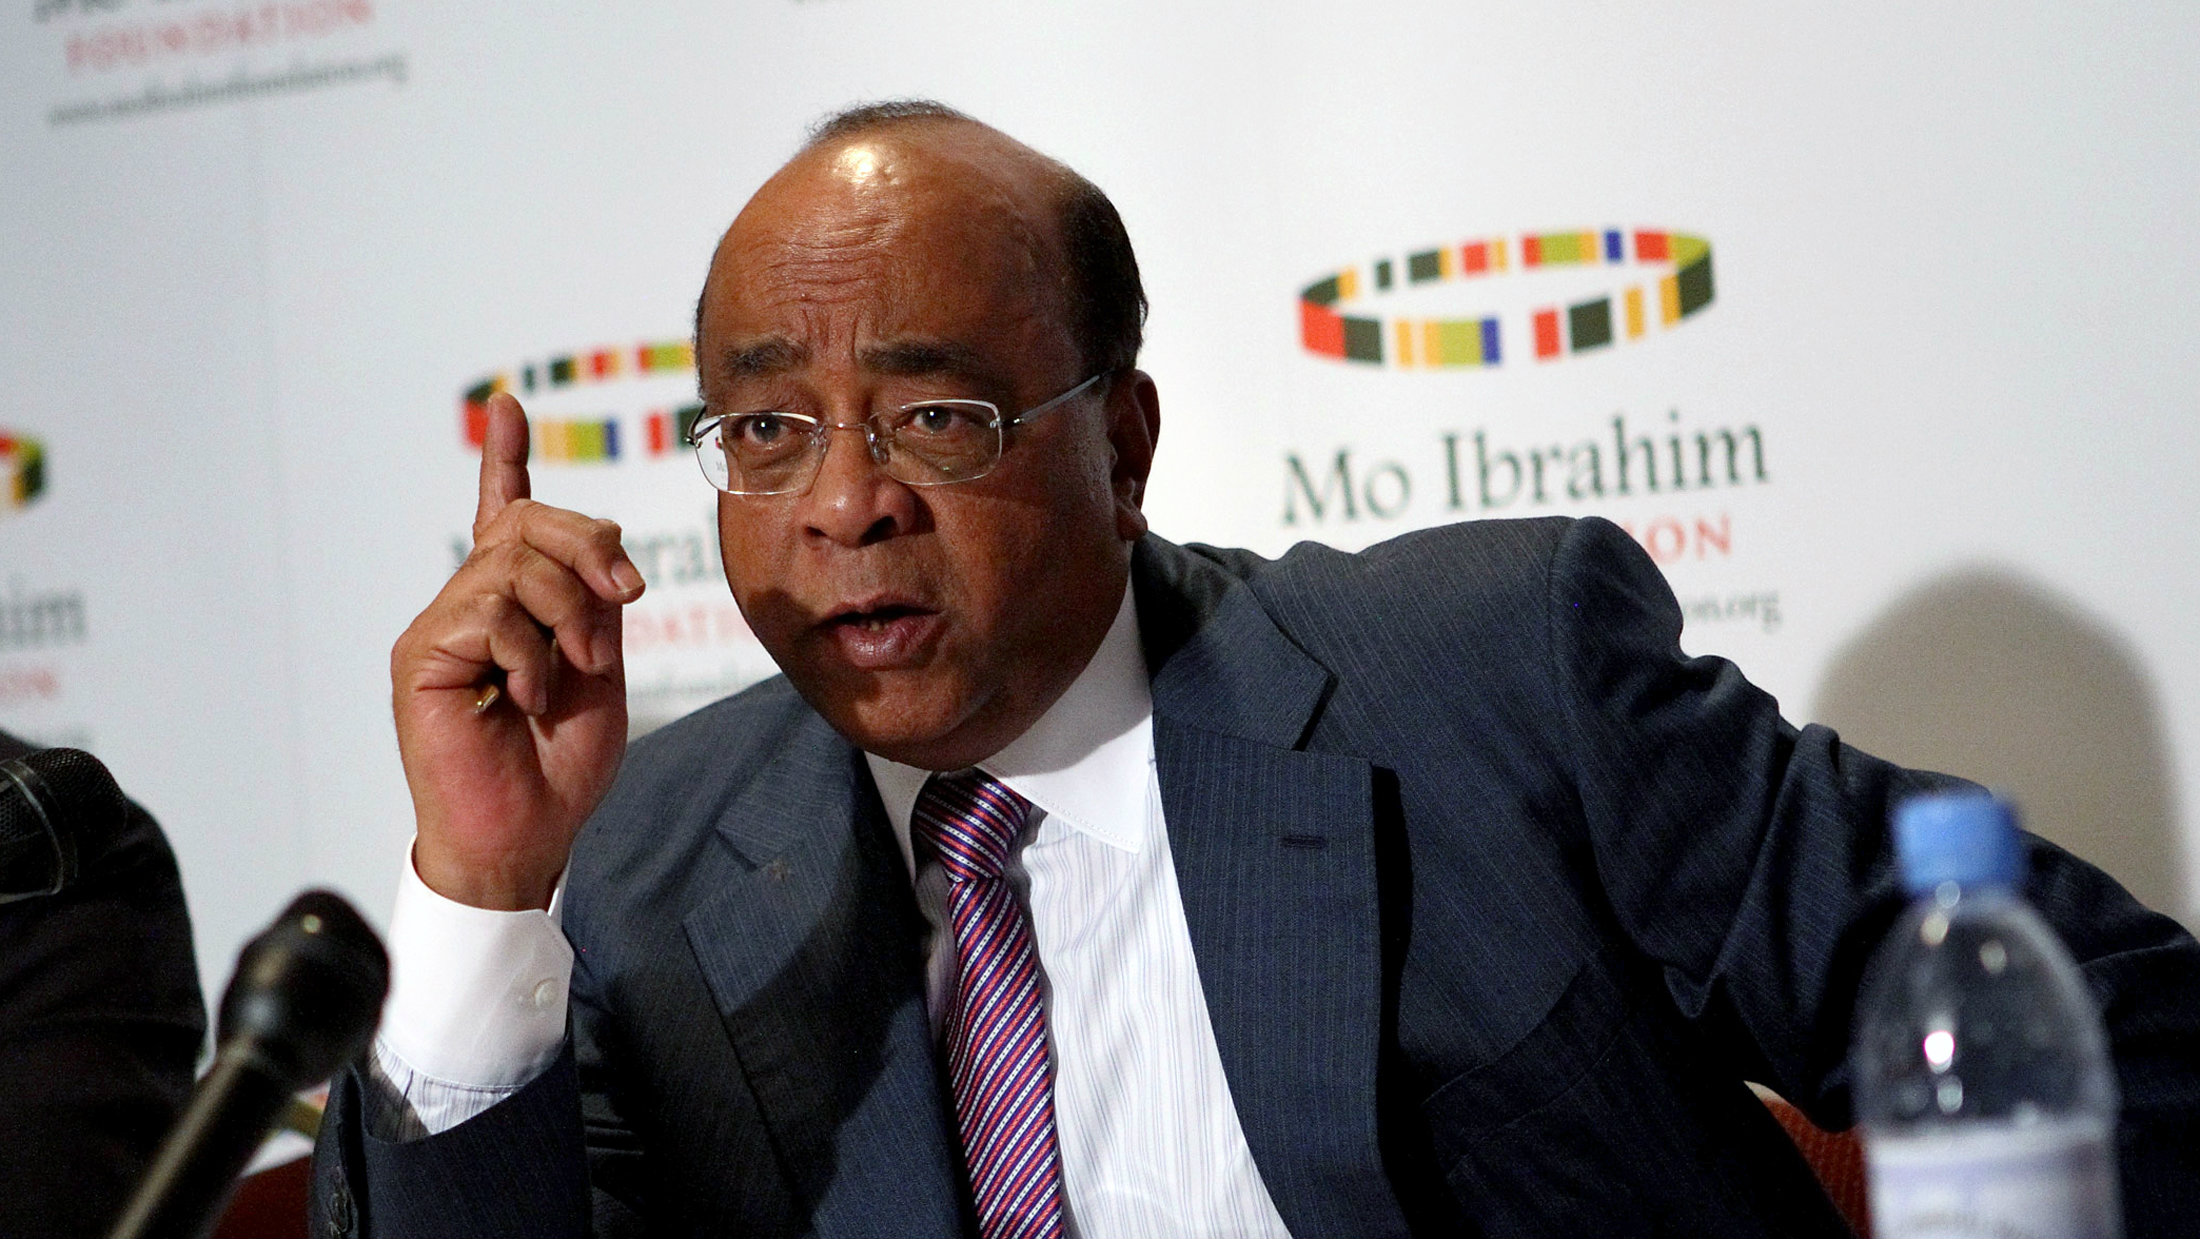 Sudanese-born telecommunications entrepreneur Mo Ibrahim addresses participants during the launch of the 2008 Ibrahim Index of African Governance in Addis Ababa, October 6, 2008.